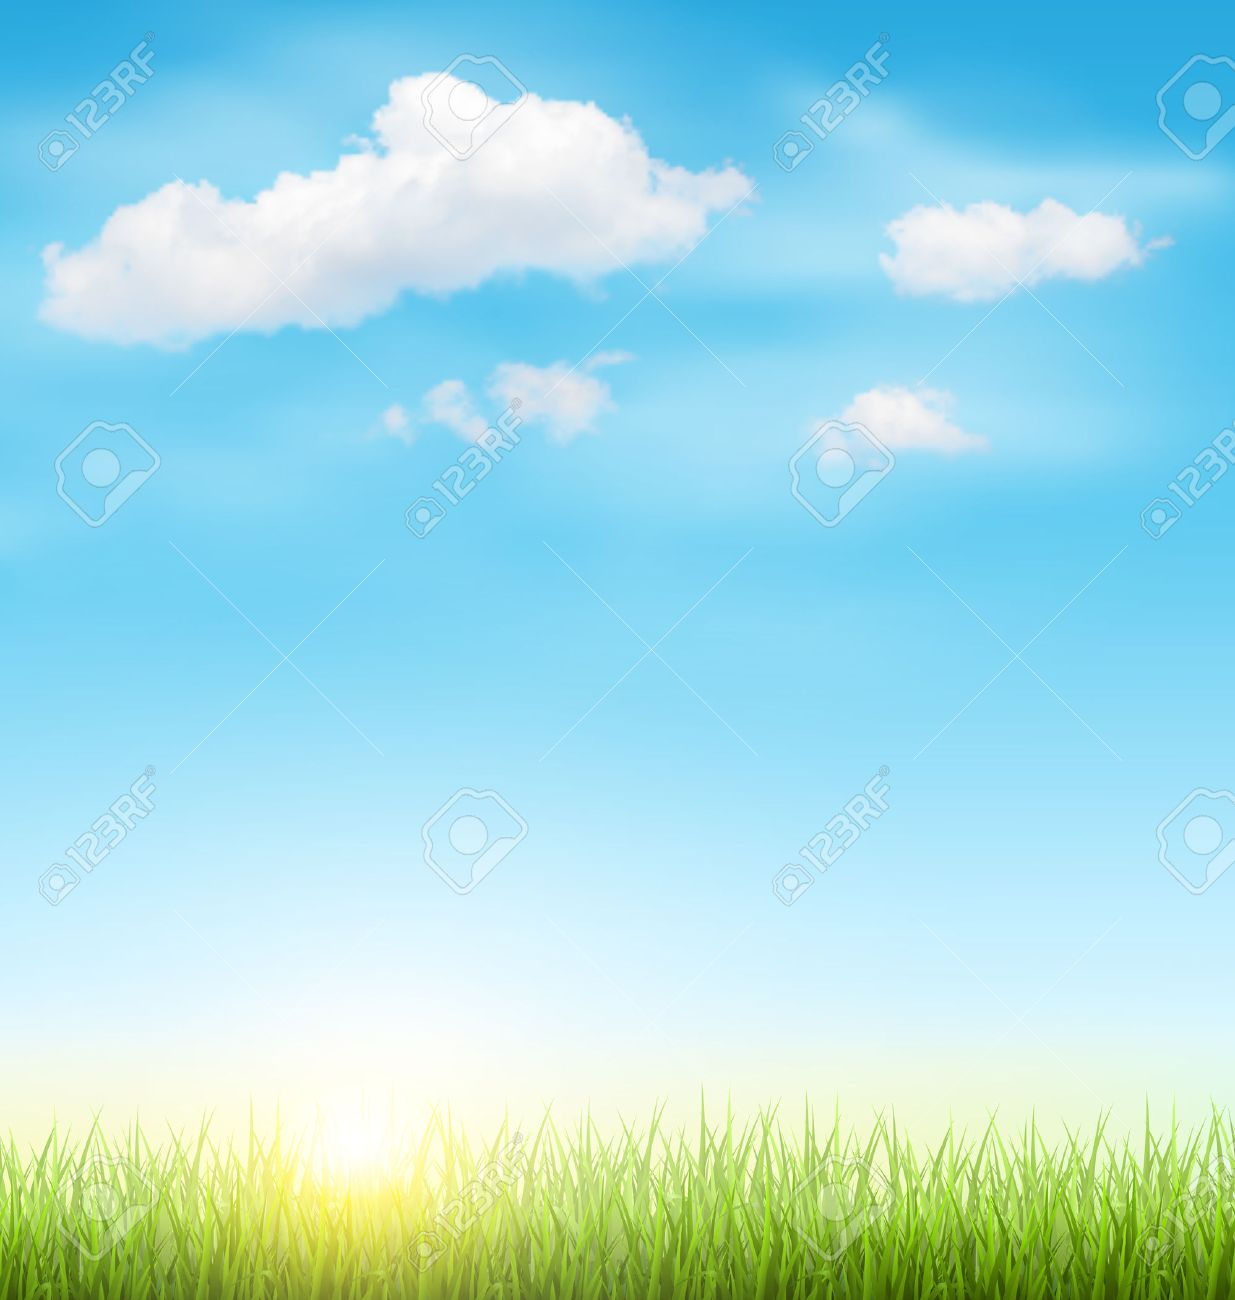 green grass lawn with clouds and sun on light blue sky royalty free